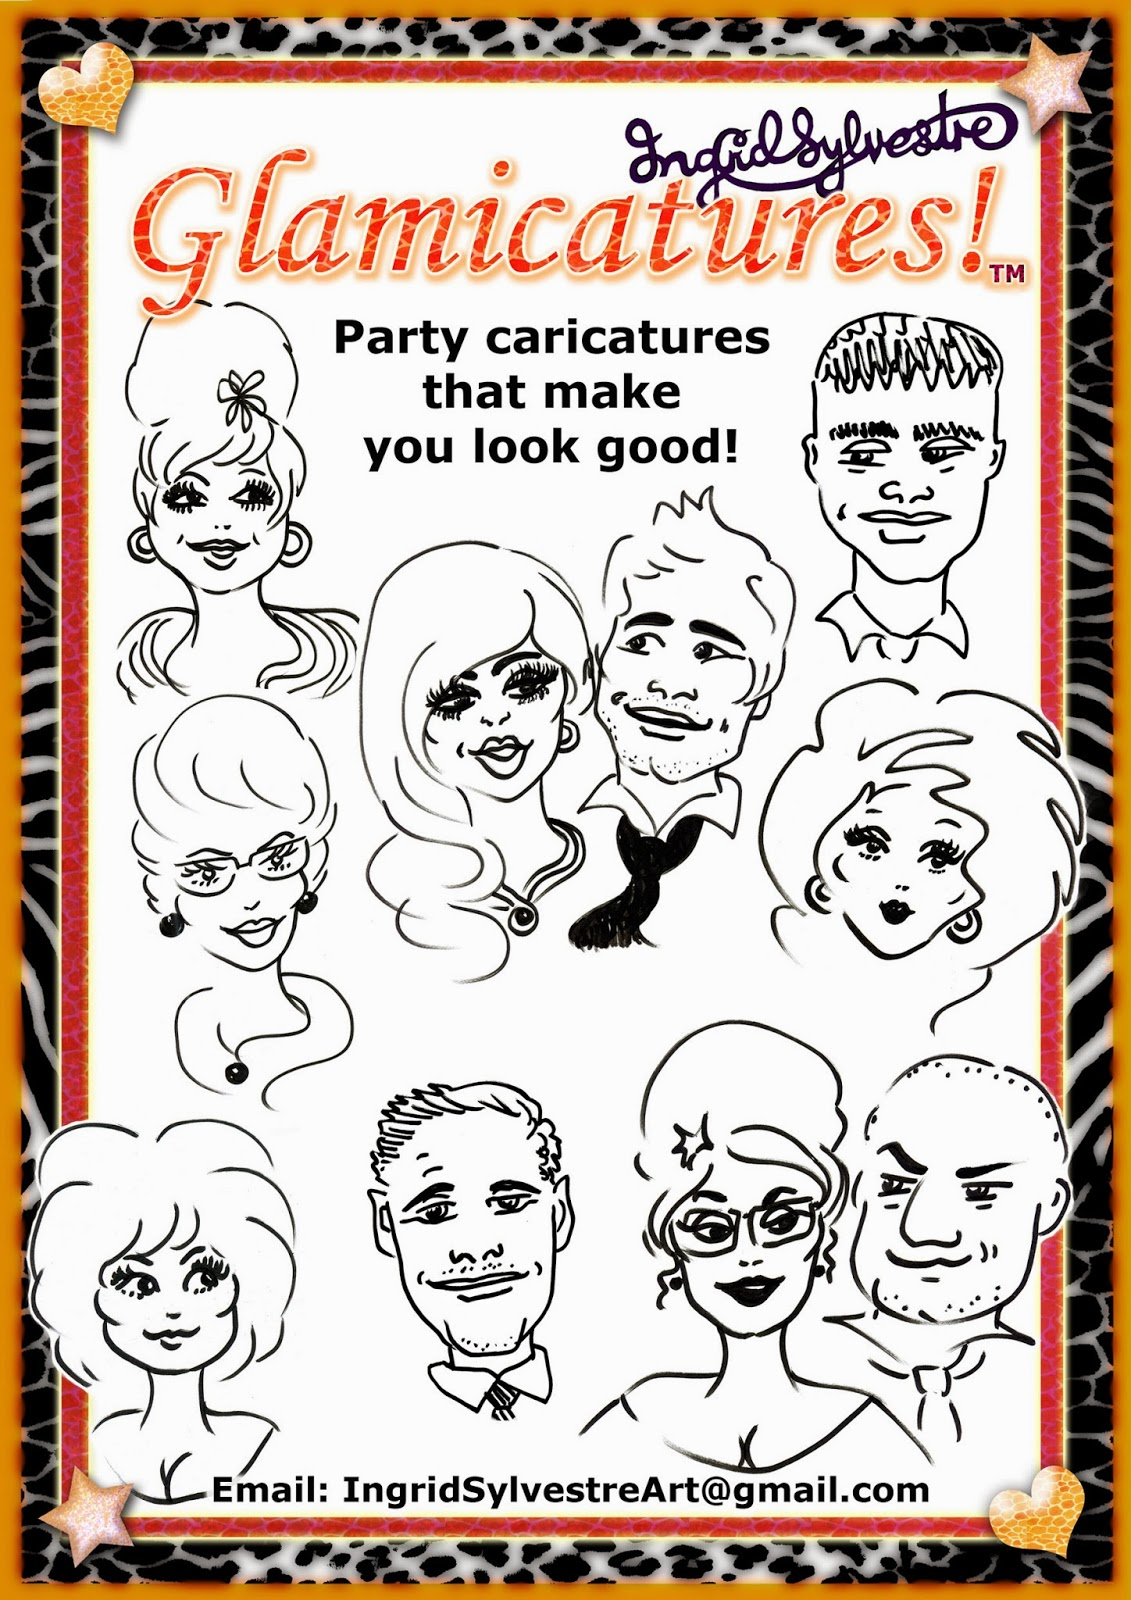 Fun Wedding ideas. Wedding Day Entertainment Ideas. Unique ideas for Wedding Reception Entertainment. Great ideas for unusual wedding day entertainment. Wedding event ideas for entertainment during reception. Unusual interesting fun Wedding planning ideas.  Glamicatures TM caricatures by UK caricature artist Ingrid Sylvestre, for weddings, parties, proms, launches, corporate events.